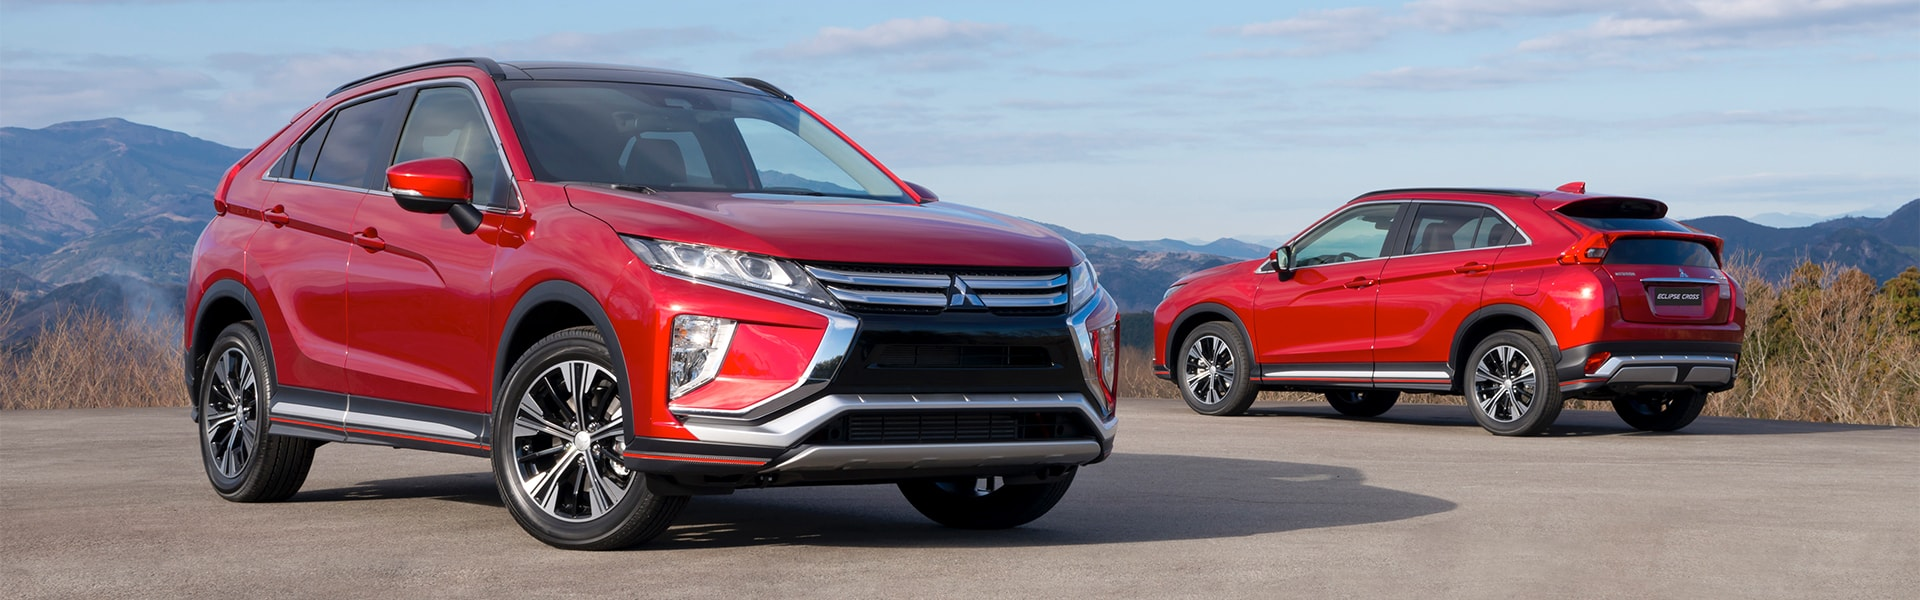 2018 Mitsubishi Eclipse Cross Styling